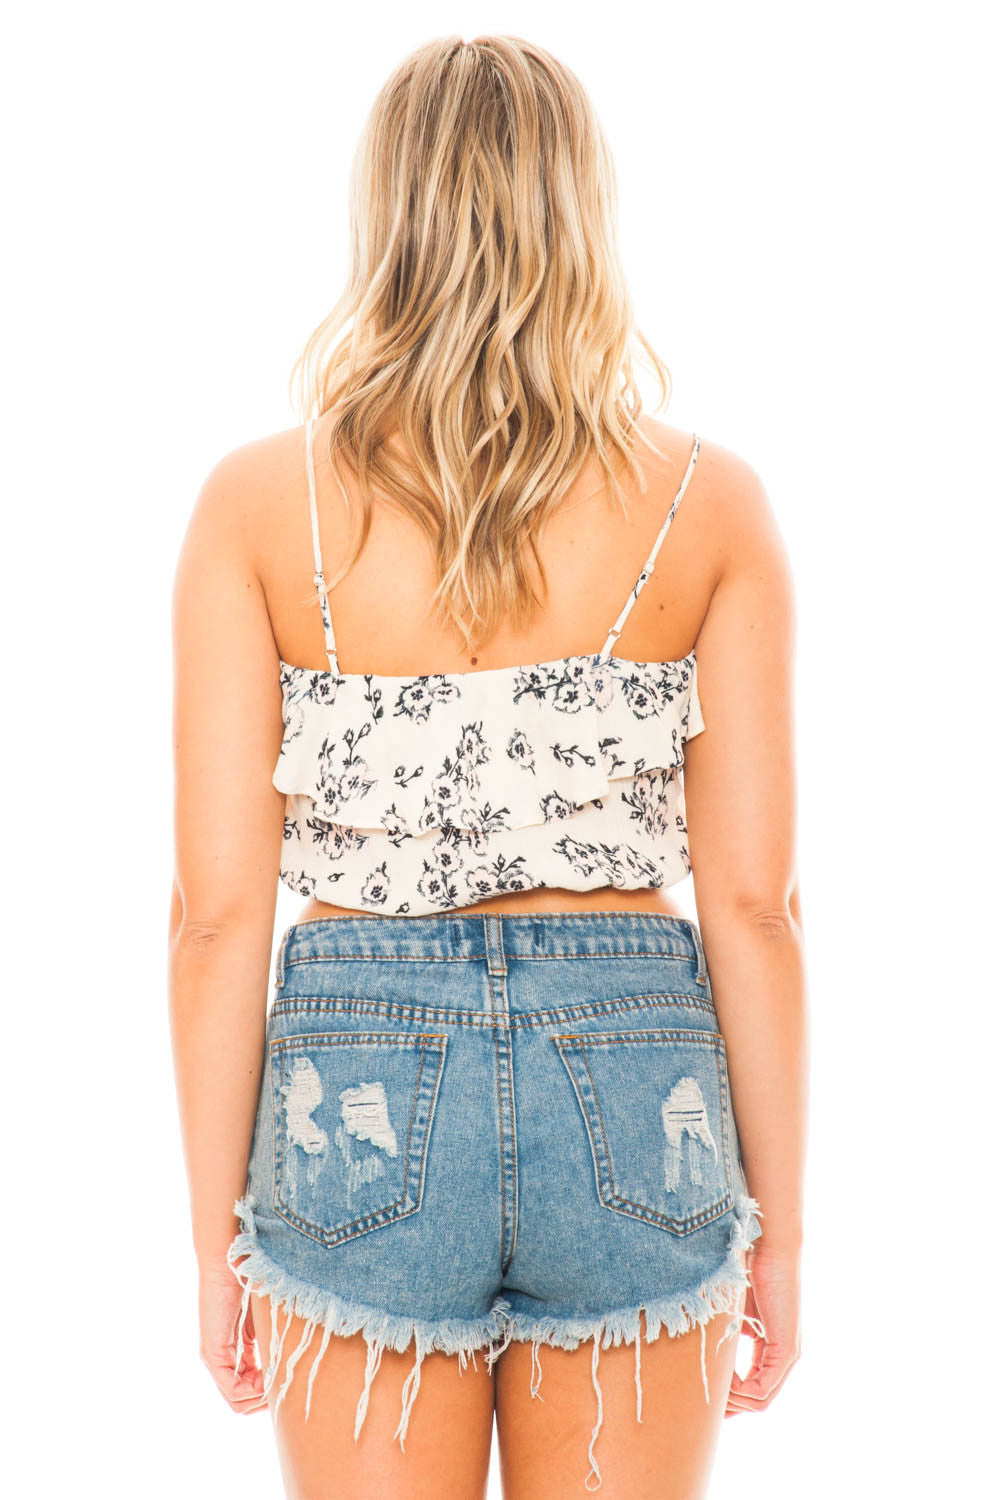 Top - Printed Ruffle Edge Top by Lush